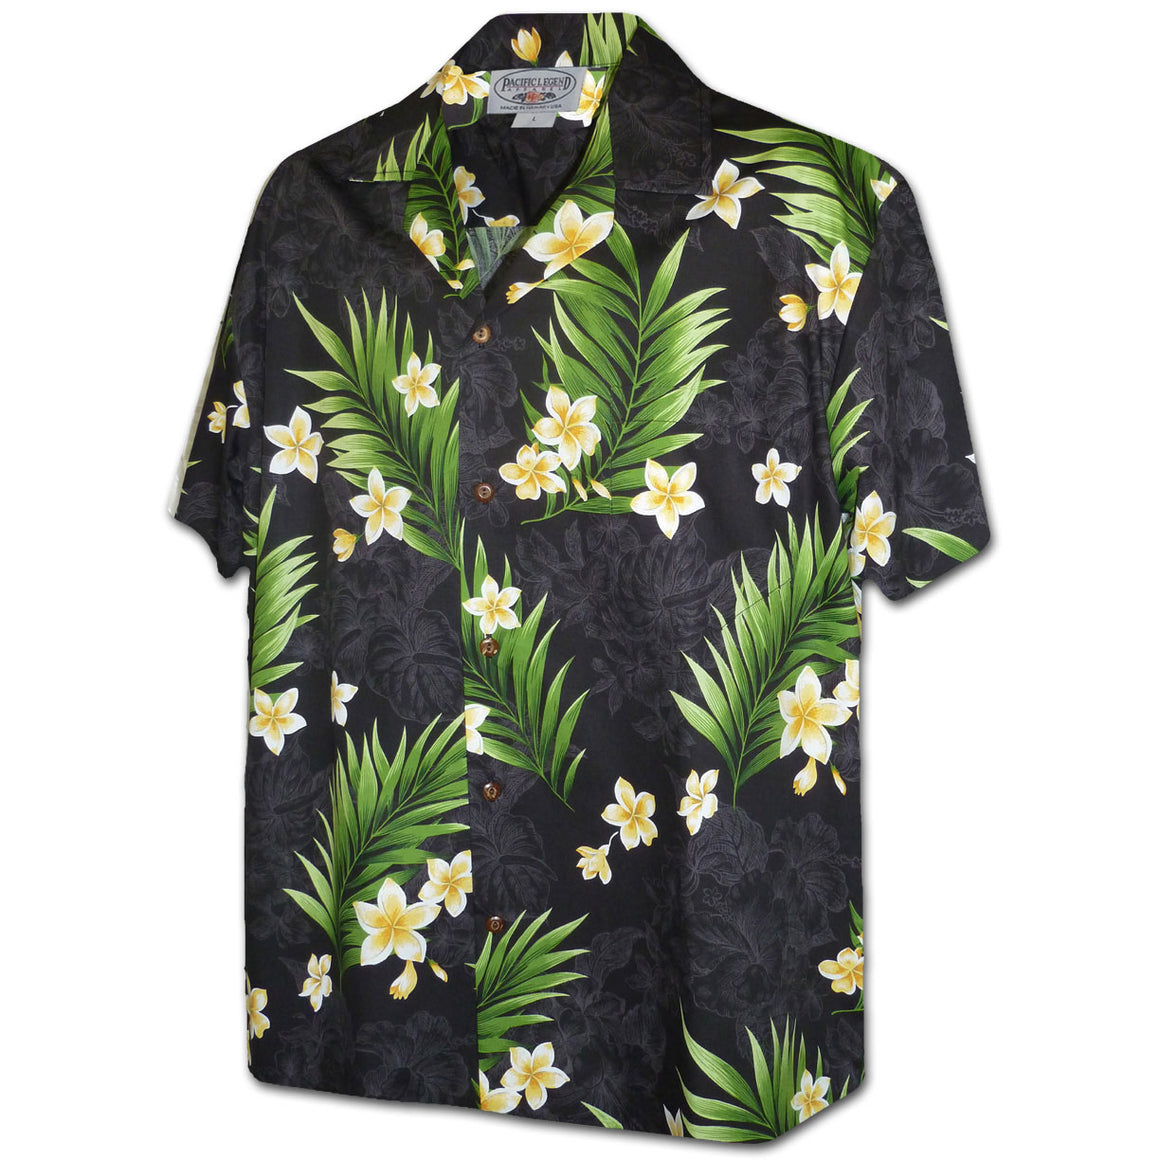 Shadow Garden Black Hawaiian Shirt